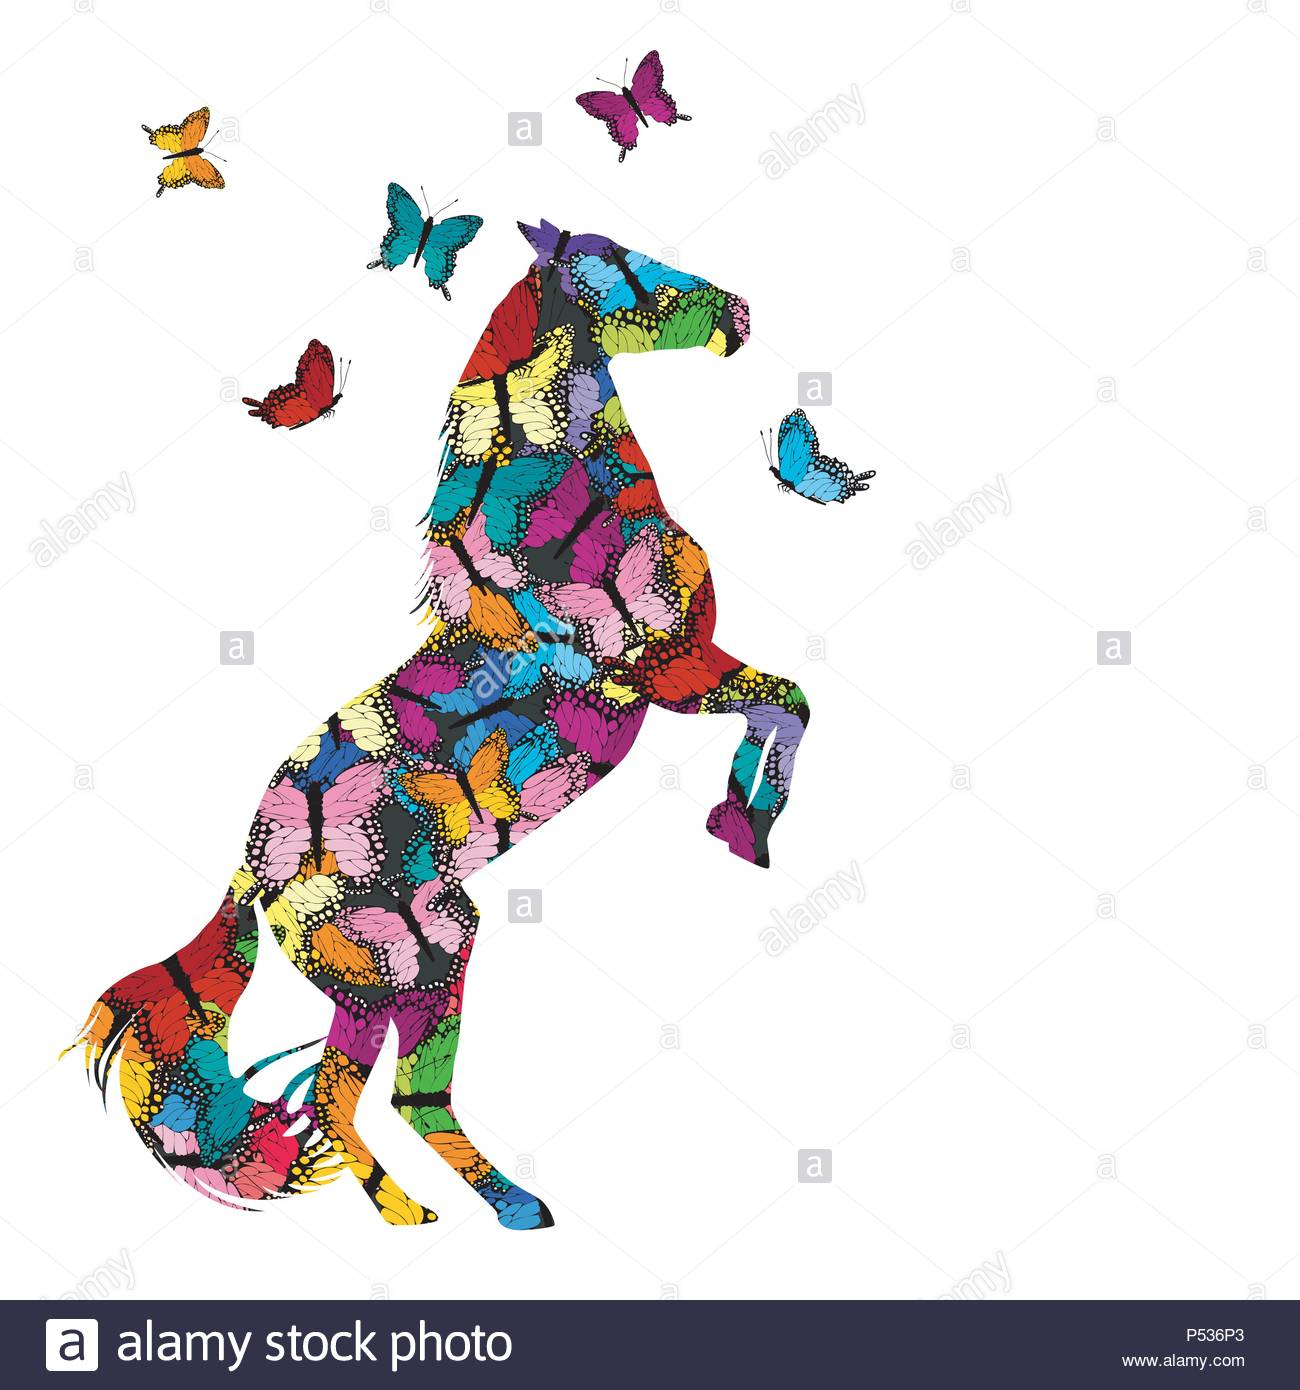 Colorful illustration with patterned rear horse and butterflies - Stock Vector